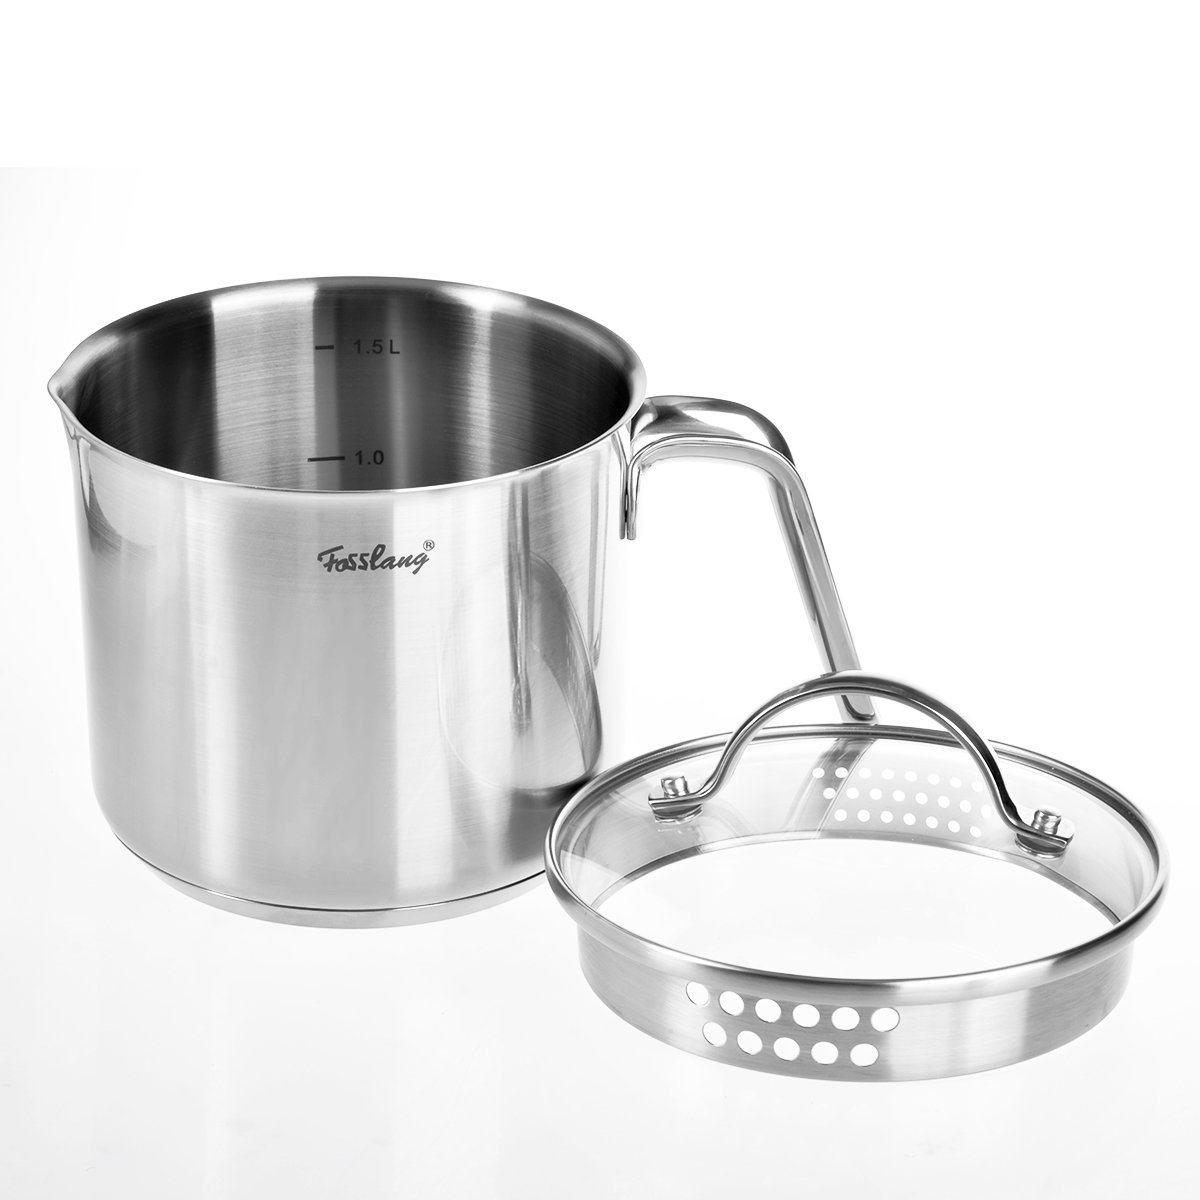 1 Quart Saucepan, Fosslang Stainless Steel Saucepan with Glass Cover, 6 Cups Burner Pot